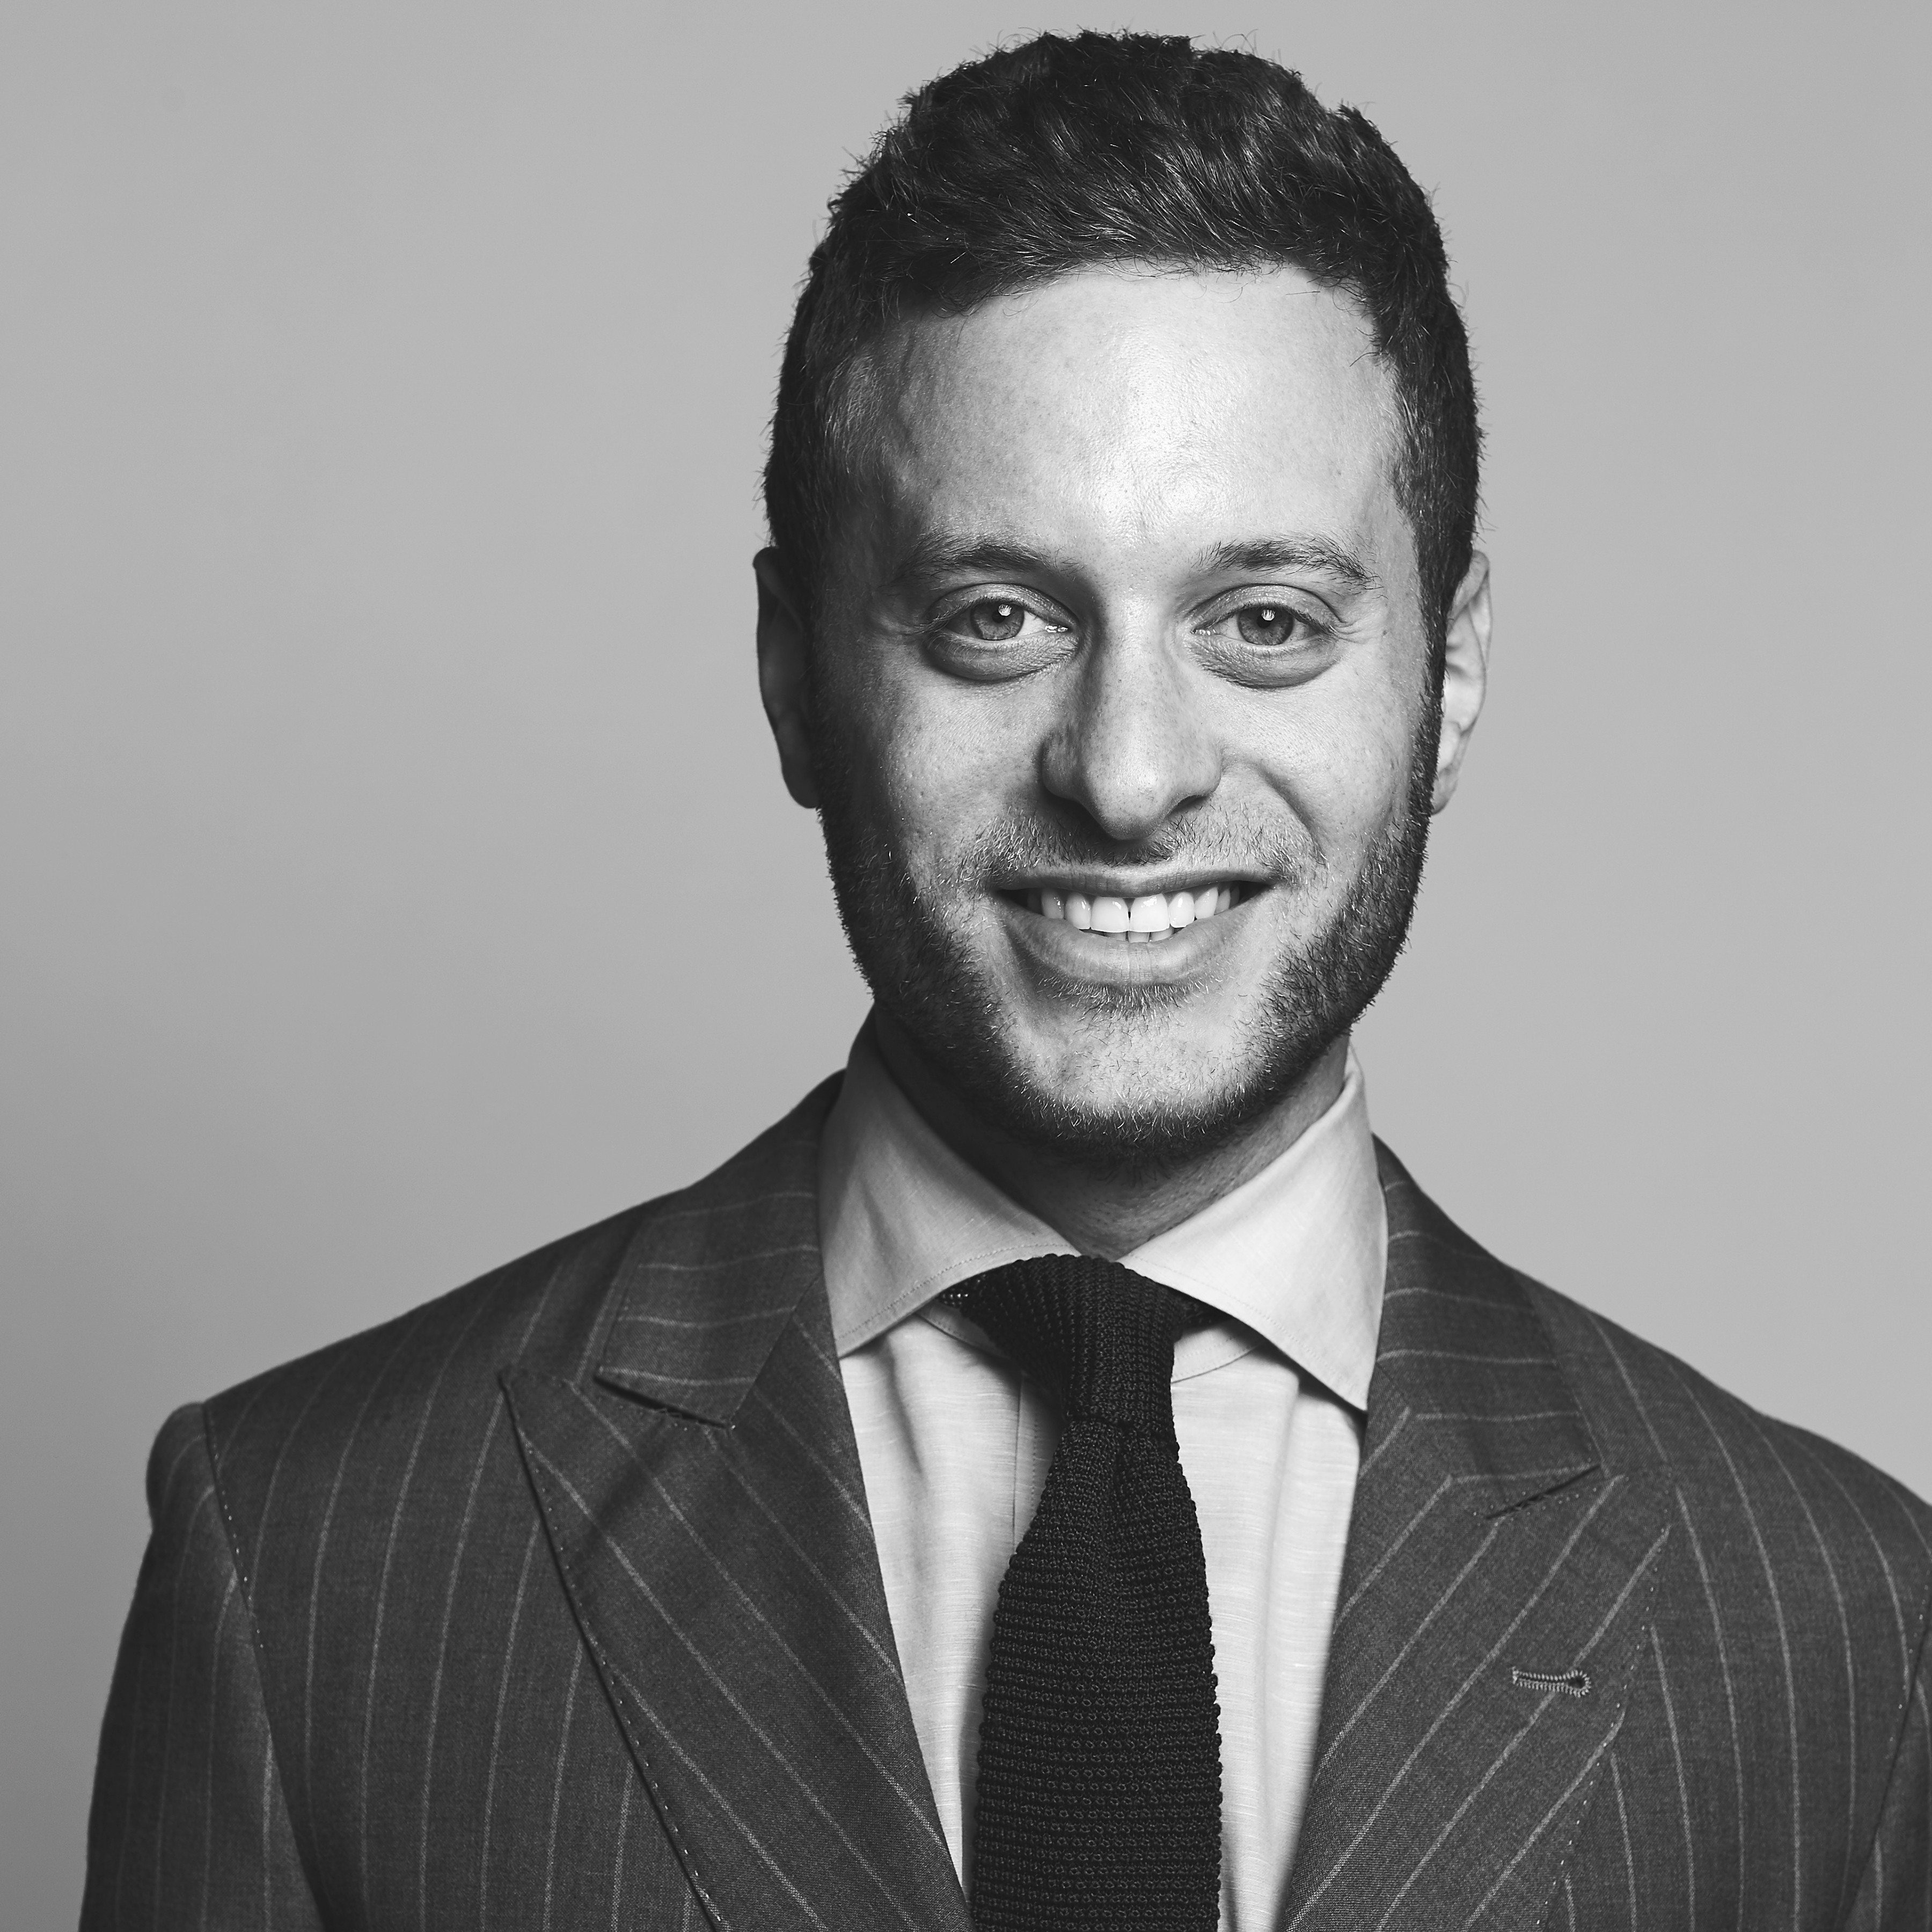 Alex Gushner Of Boyds Philadelphia Here Are 5 Things You Need To Succeed In The Fashion Industry By Authority Magazine Authority Magazine Medium